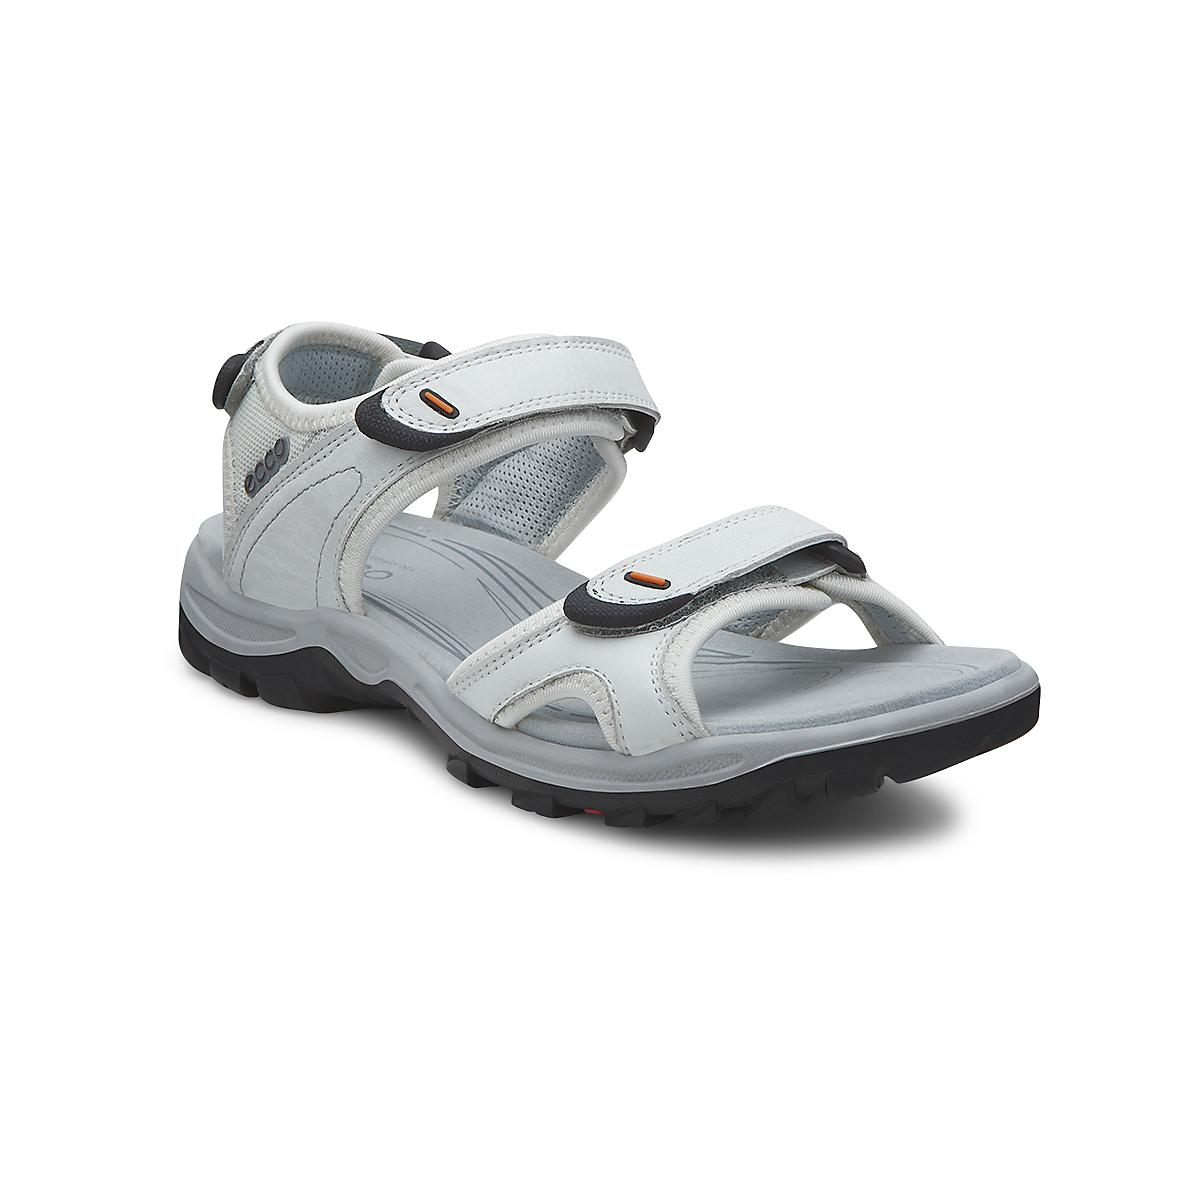 409b4e14ad80 Womens Ecco Offroad Lite Sandals Shoe at Road Runner Sports